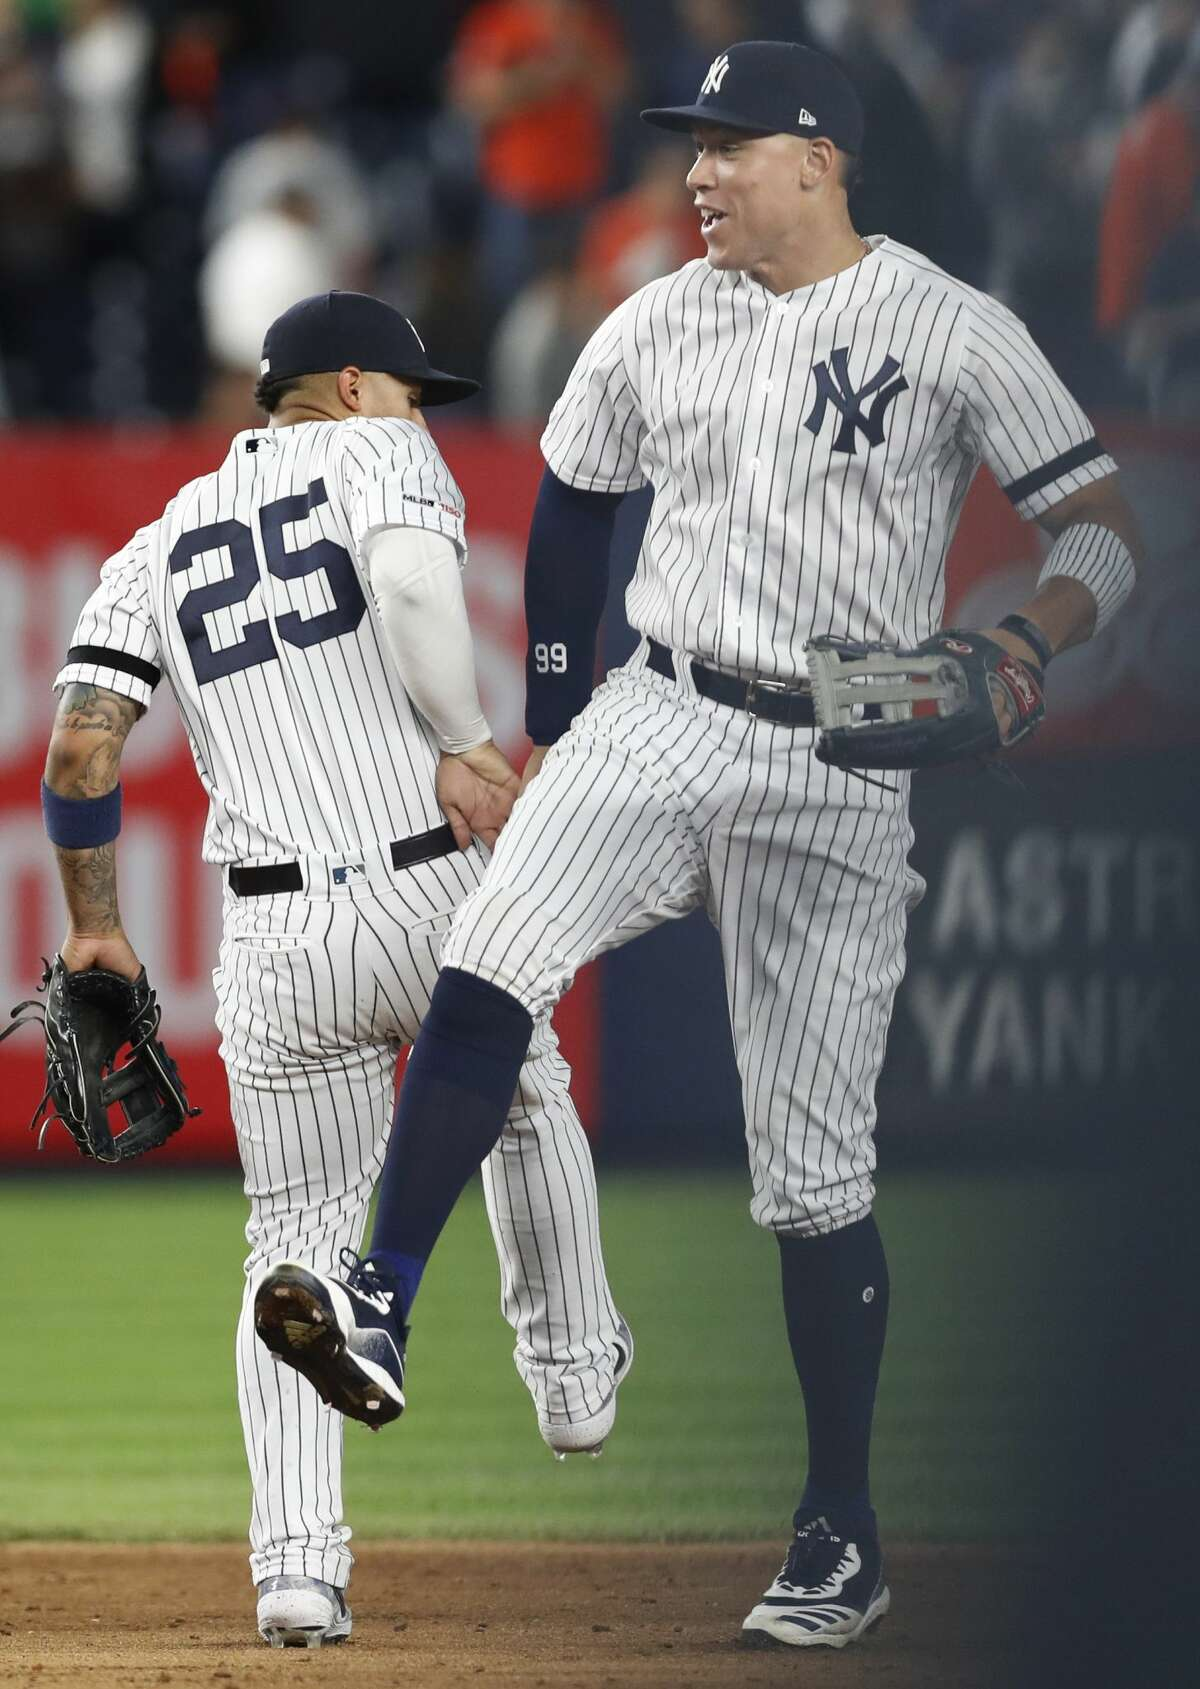 New York Yankees right fielder Aaron Judge, right, celebrates with second baseman Gleyber Torres after the Yankees defeated the Houston Astros 4-1 in a baseball game Friday, June 21, 2019, in New York. (AP Photo/Kathy Willens)